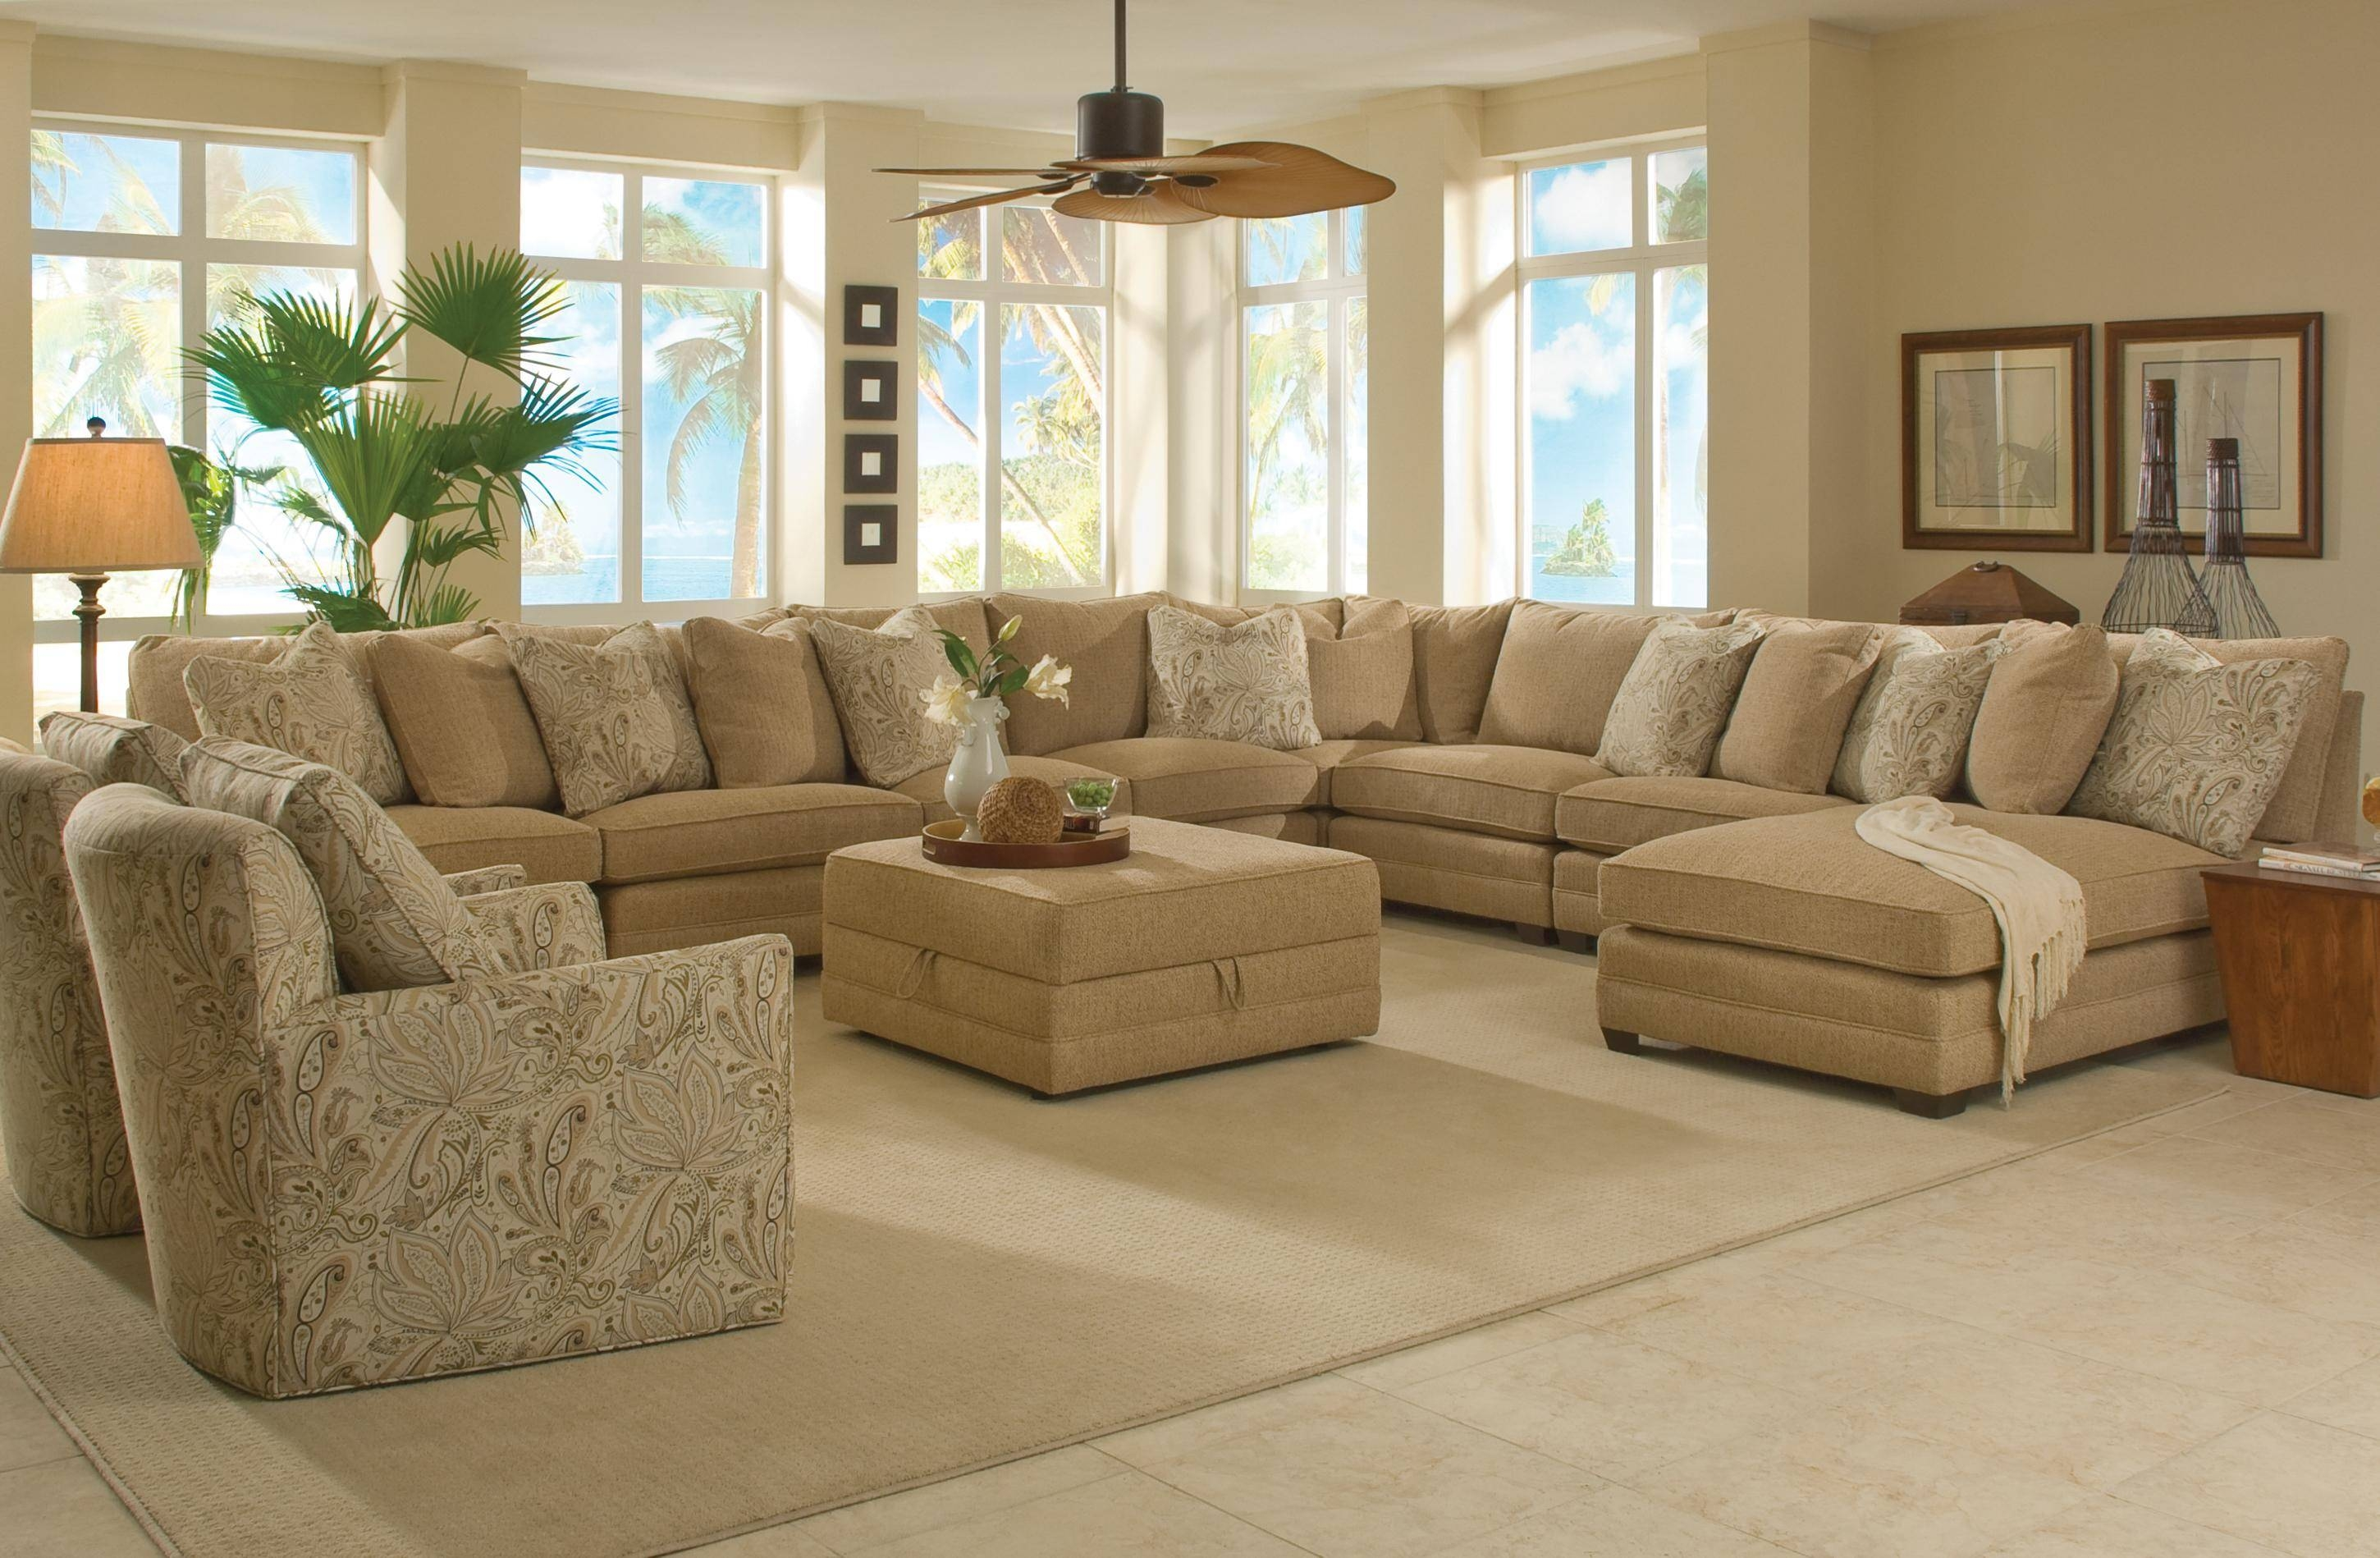 Sam Moore Margo Wide Sectional Sofa | Moore's Home Furnishings In Sam Moore Sofas (View 12 of 15)